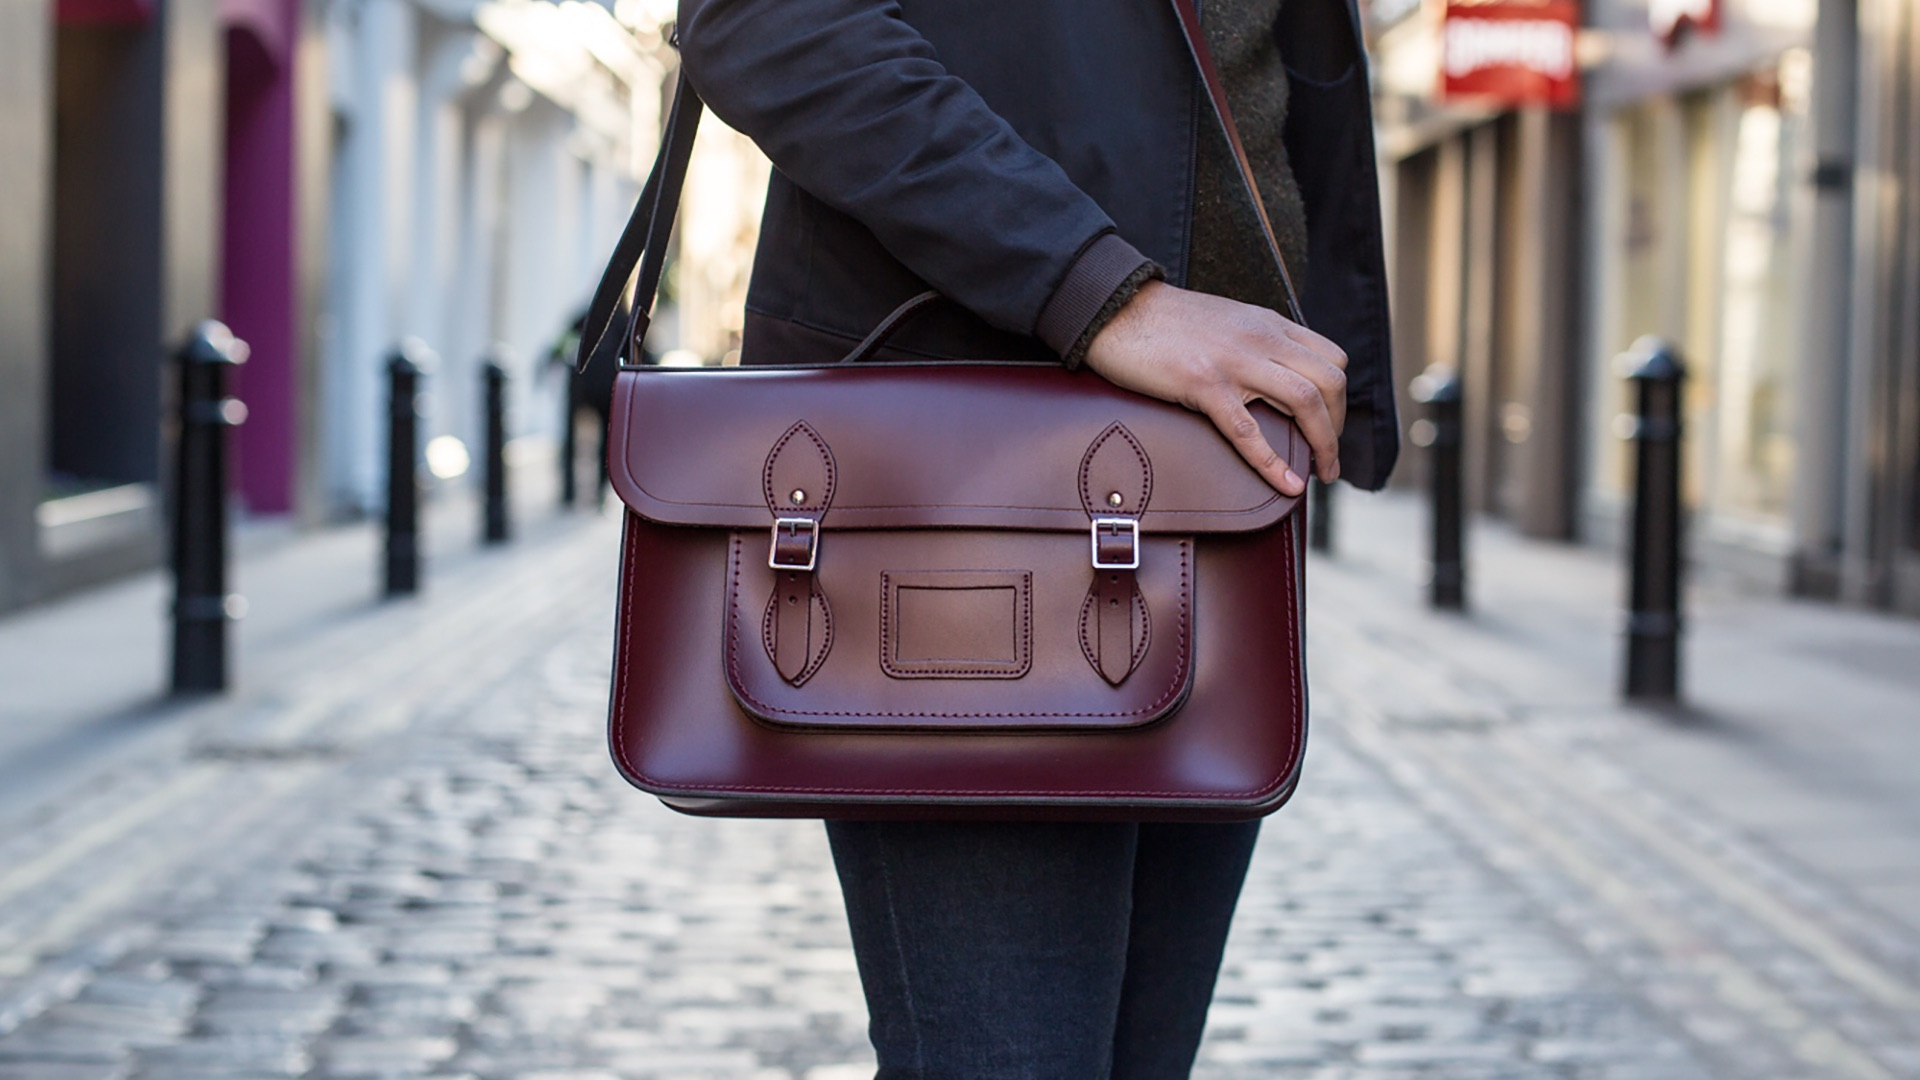 Tonsor_cie_the_cambridge_satchel_company_blog